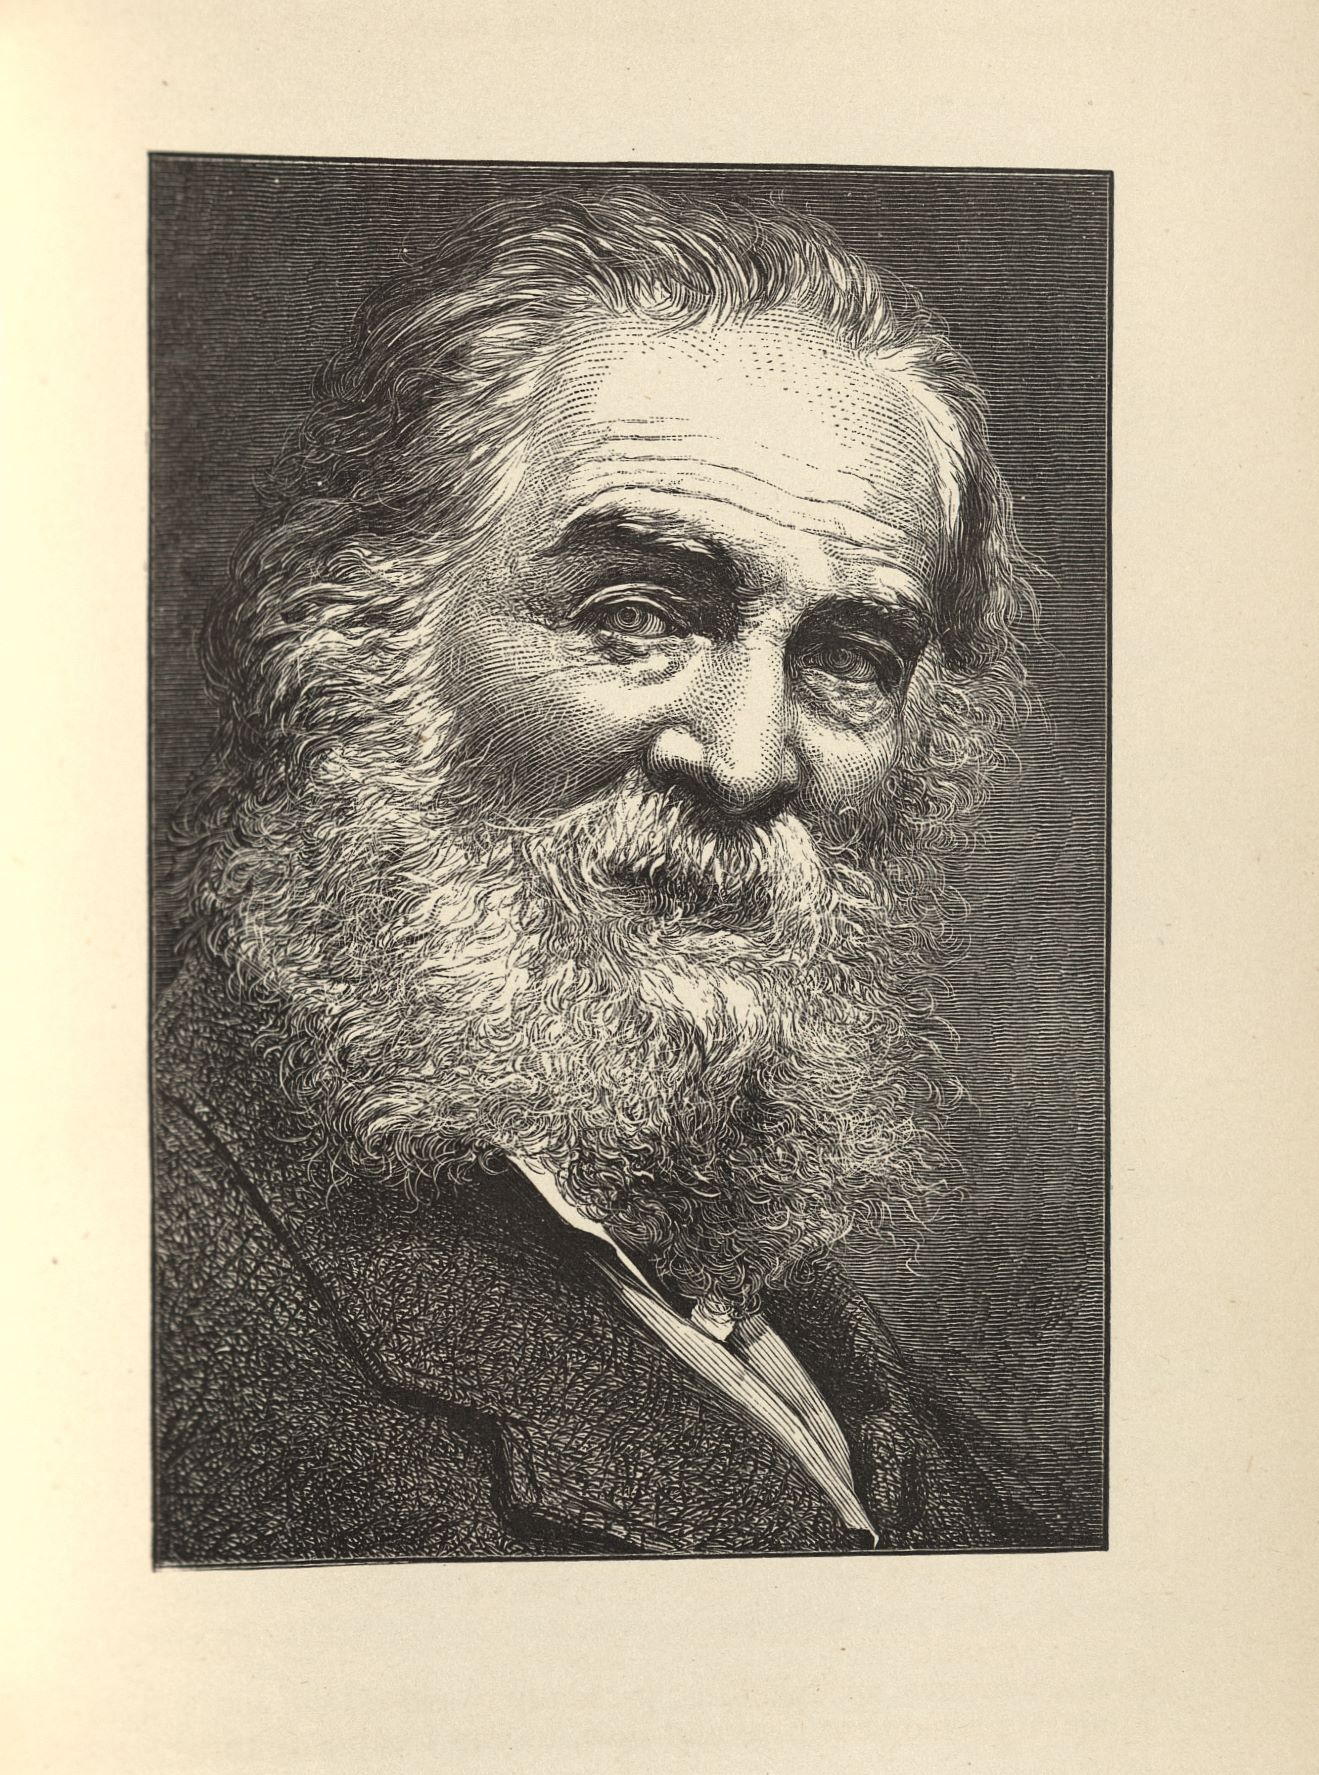 Engraving of Whitman as an older man, from the Author's Edition of Leaves of Grass, 1882